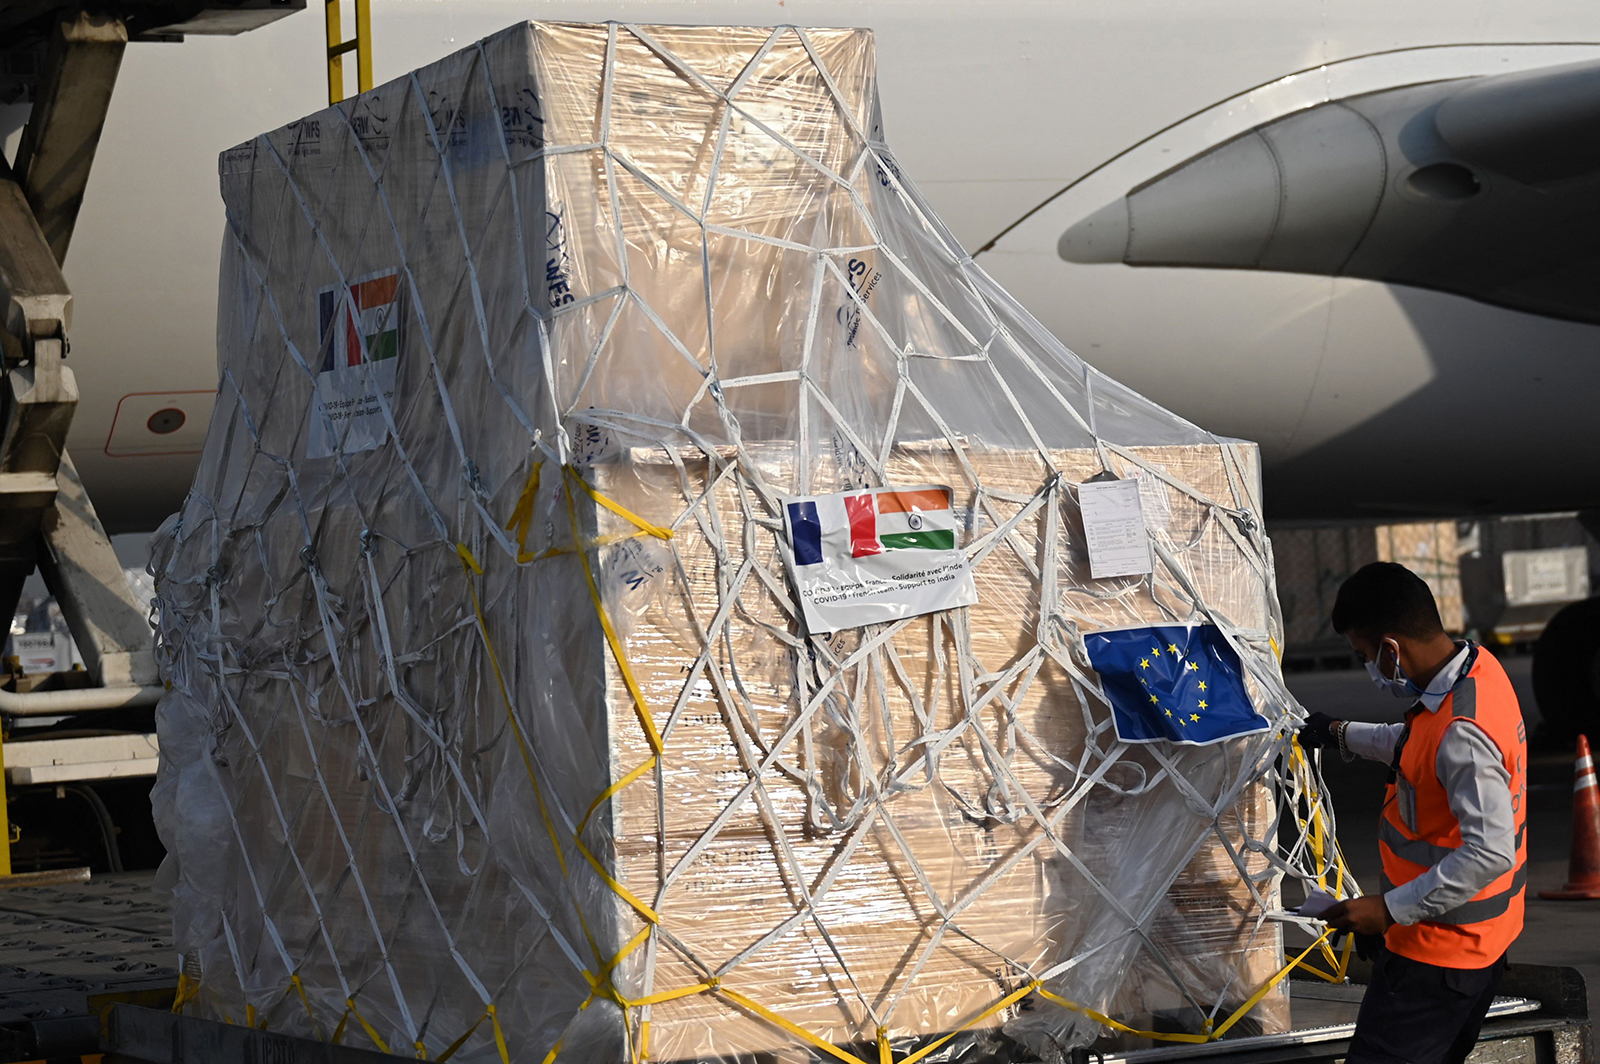 A ground staff unloads coronavirus medical supplies from France, upon the arrival of a cargo plane at the Indira Gandhi International Airport in New Delhi on May 2.